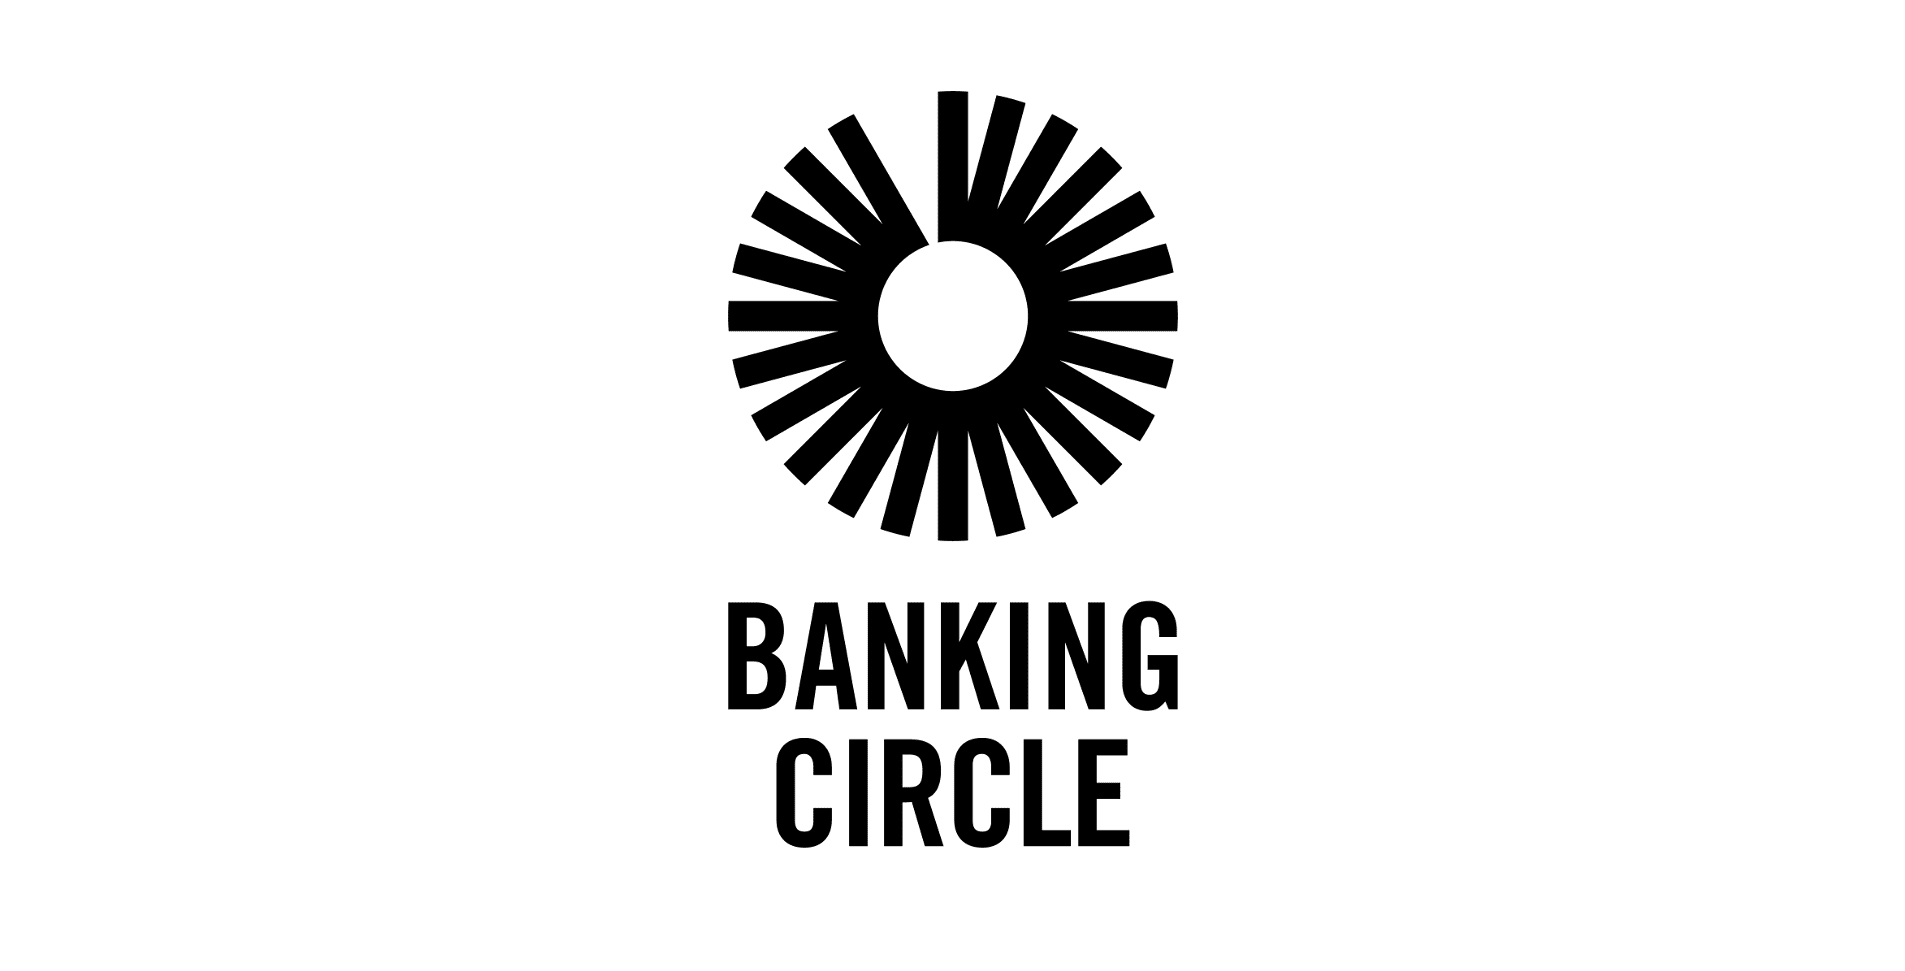 Banking Circle Supports Payments Businesses' Merchants Ahead of the Big Christmas Sales Push